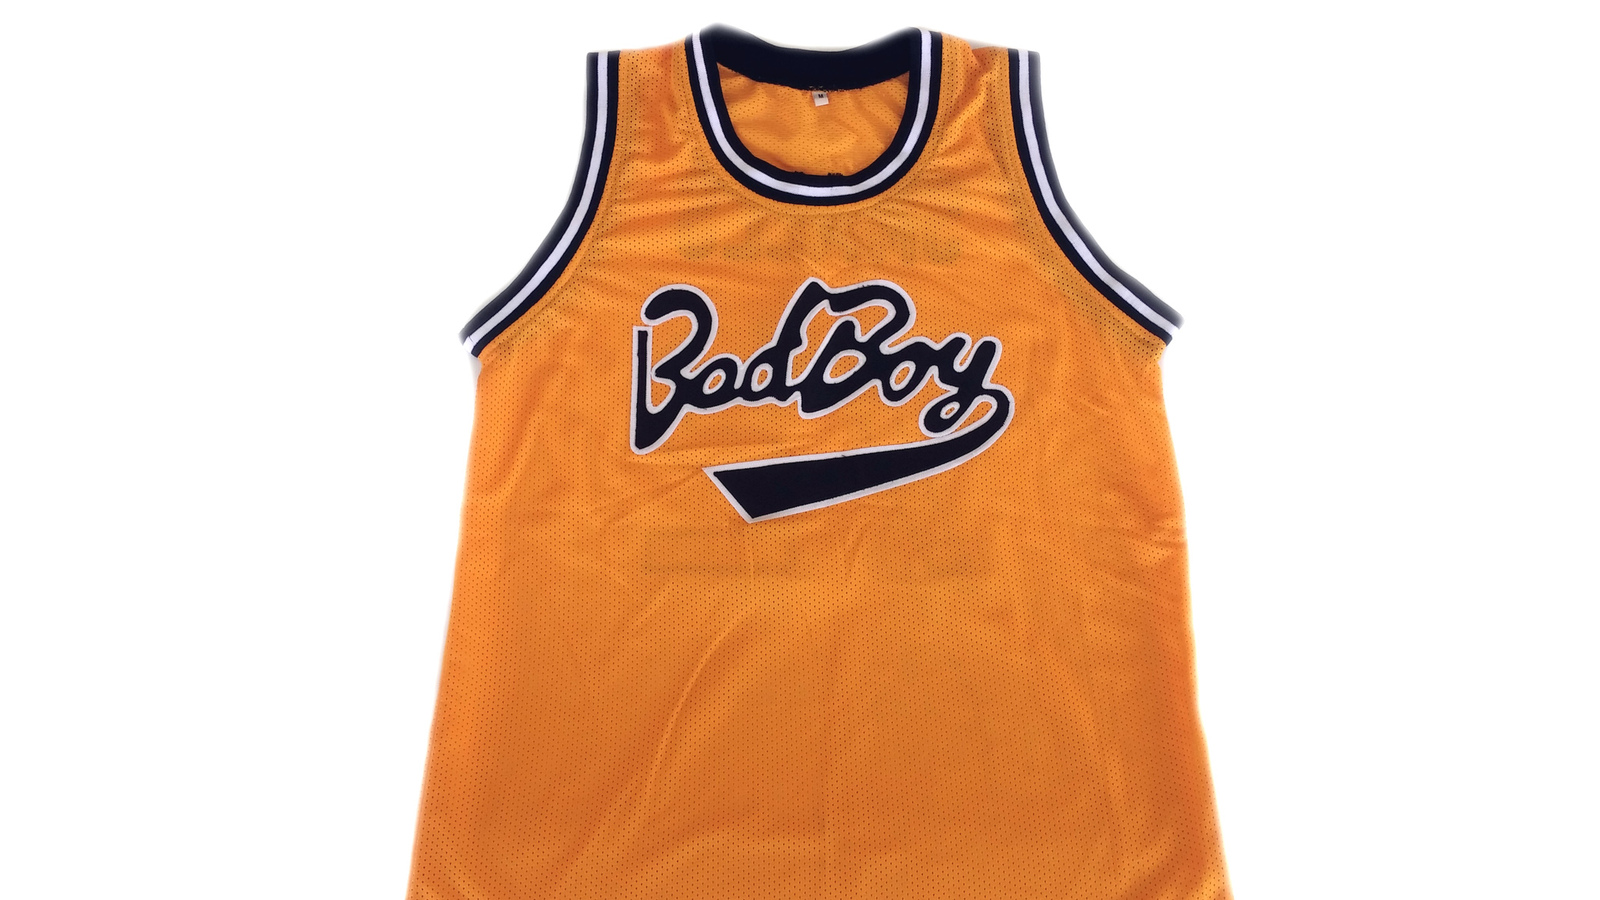 Biggie Smalls #72 Bad Boy Notorious Big New Basketball Jersey Yellow Any Size